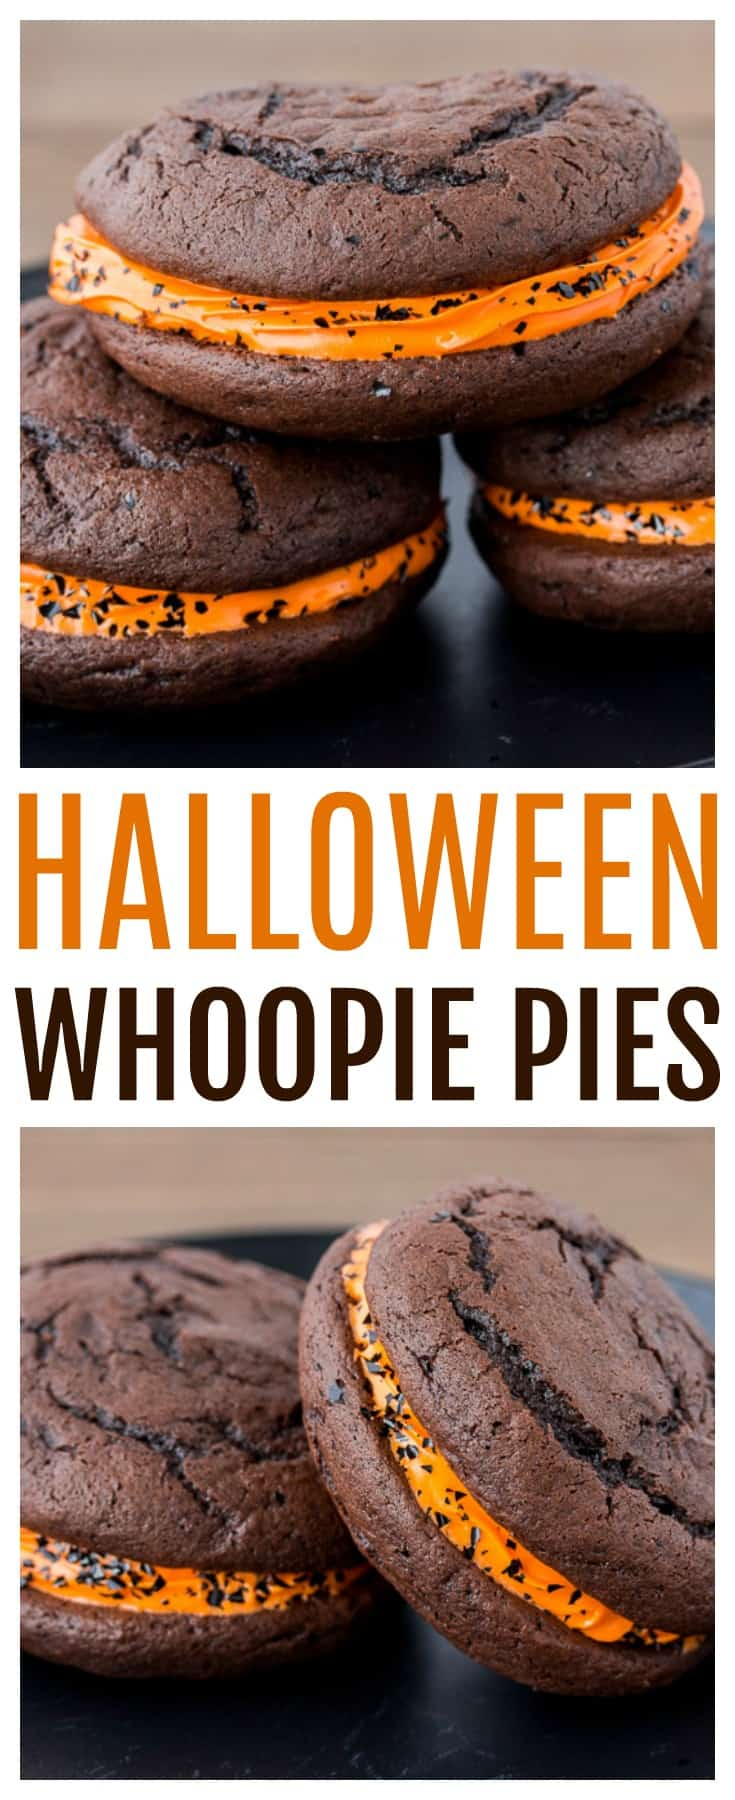 halloween whoopie pies devils food cake and orange icing make this dessert recipe perfect for